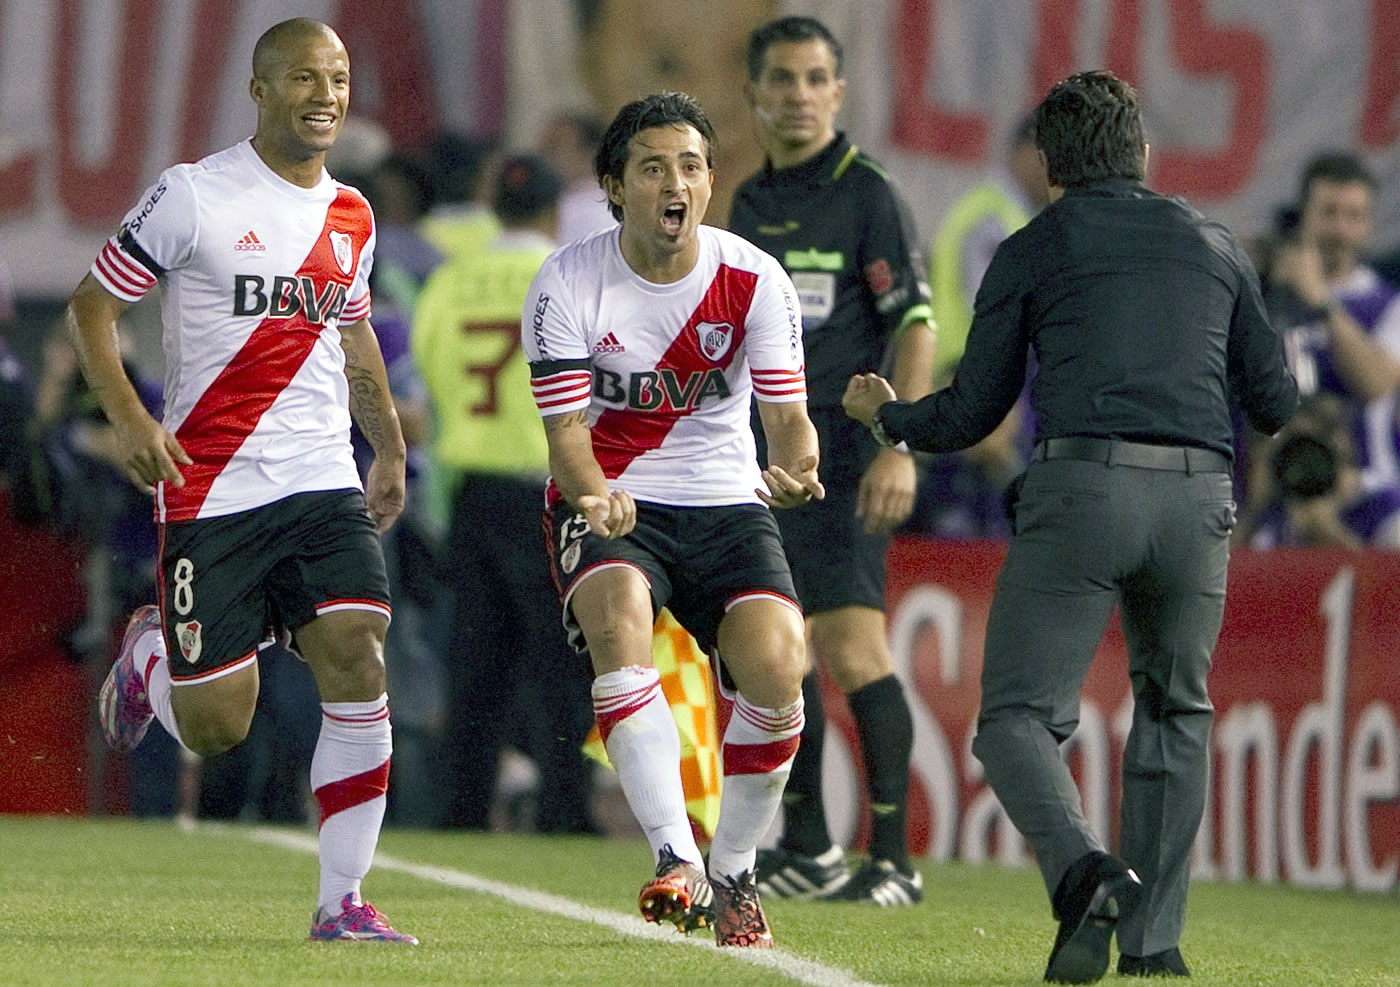 River Plate 1-0 Boca Juniors